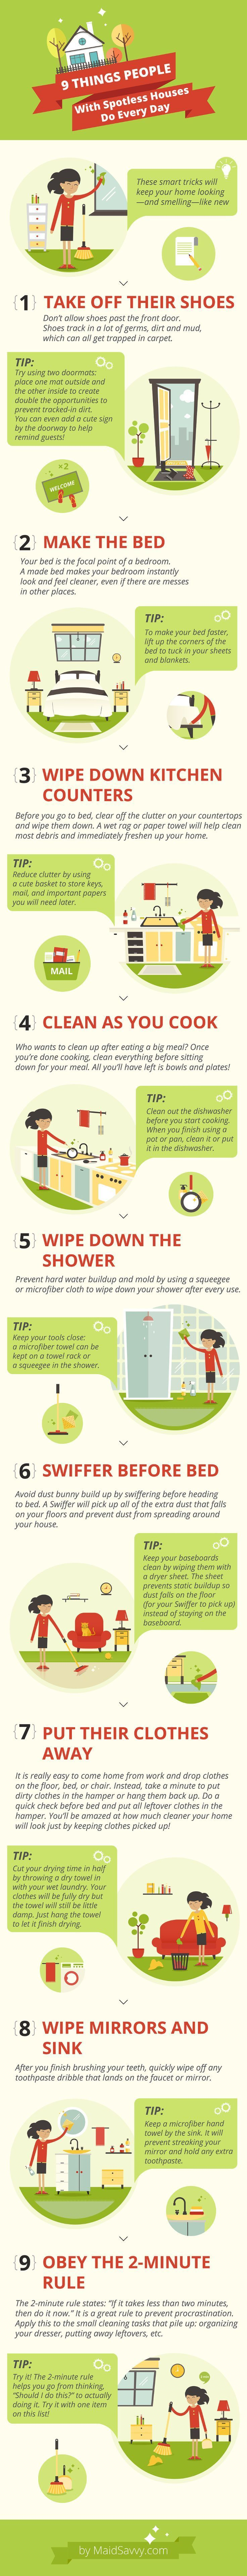 Simple things you can do every day to keep your home clean. Helpful cleaning tips in this infographic!